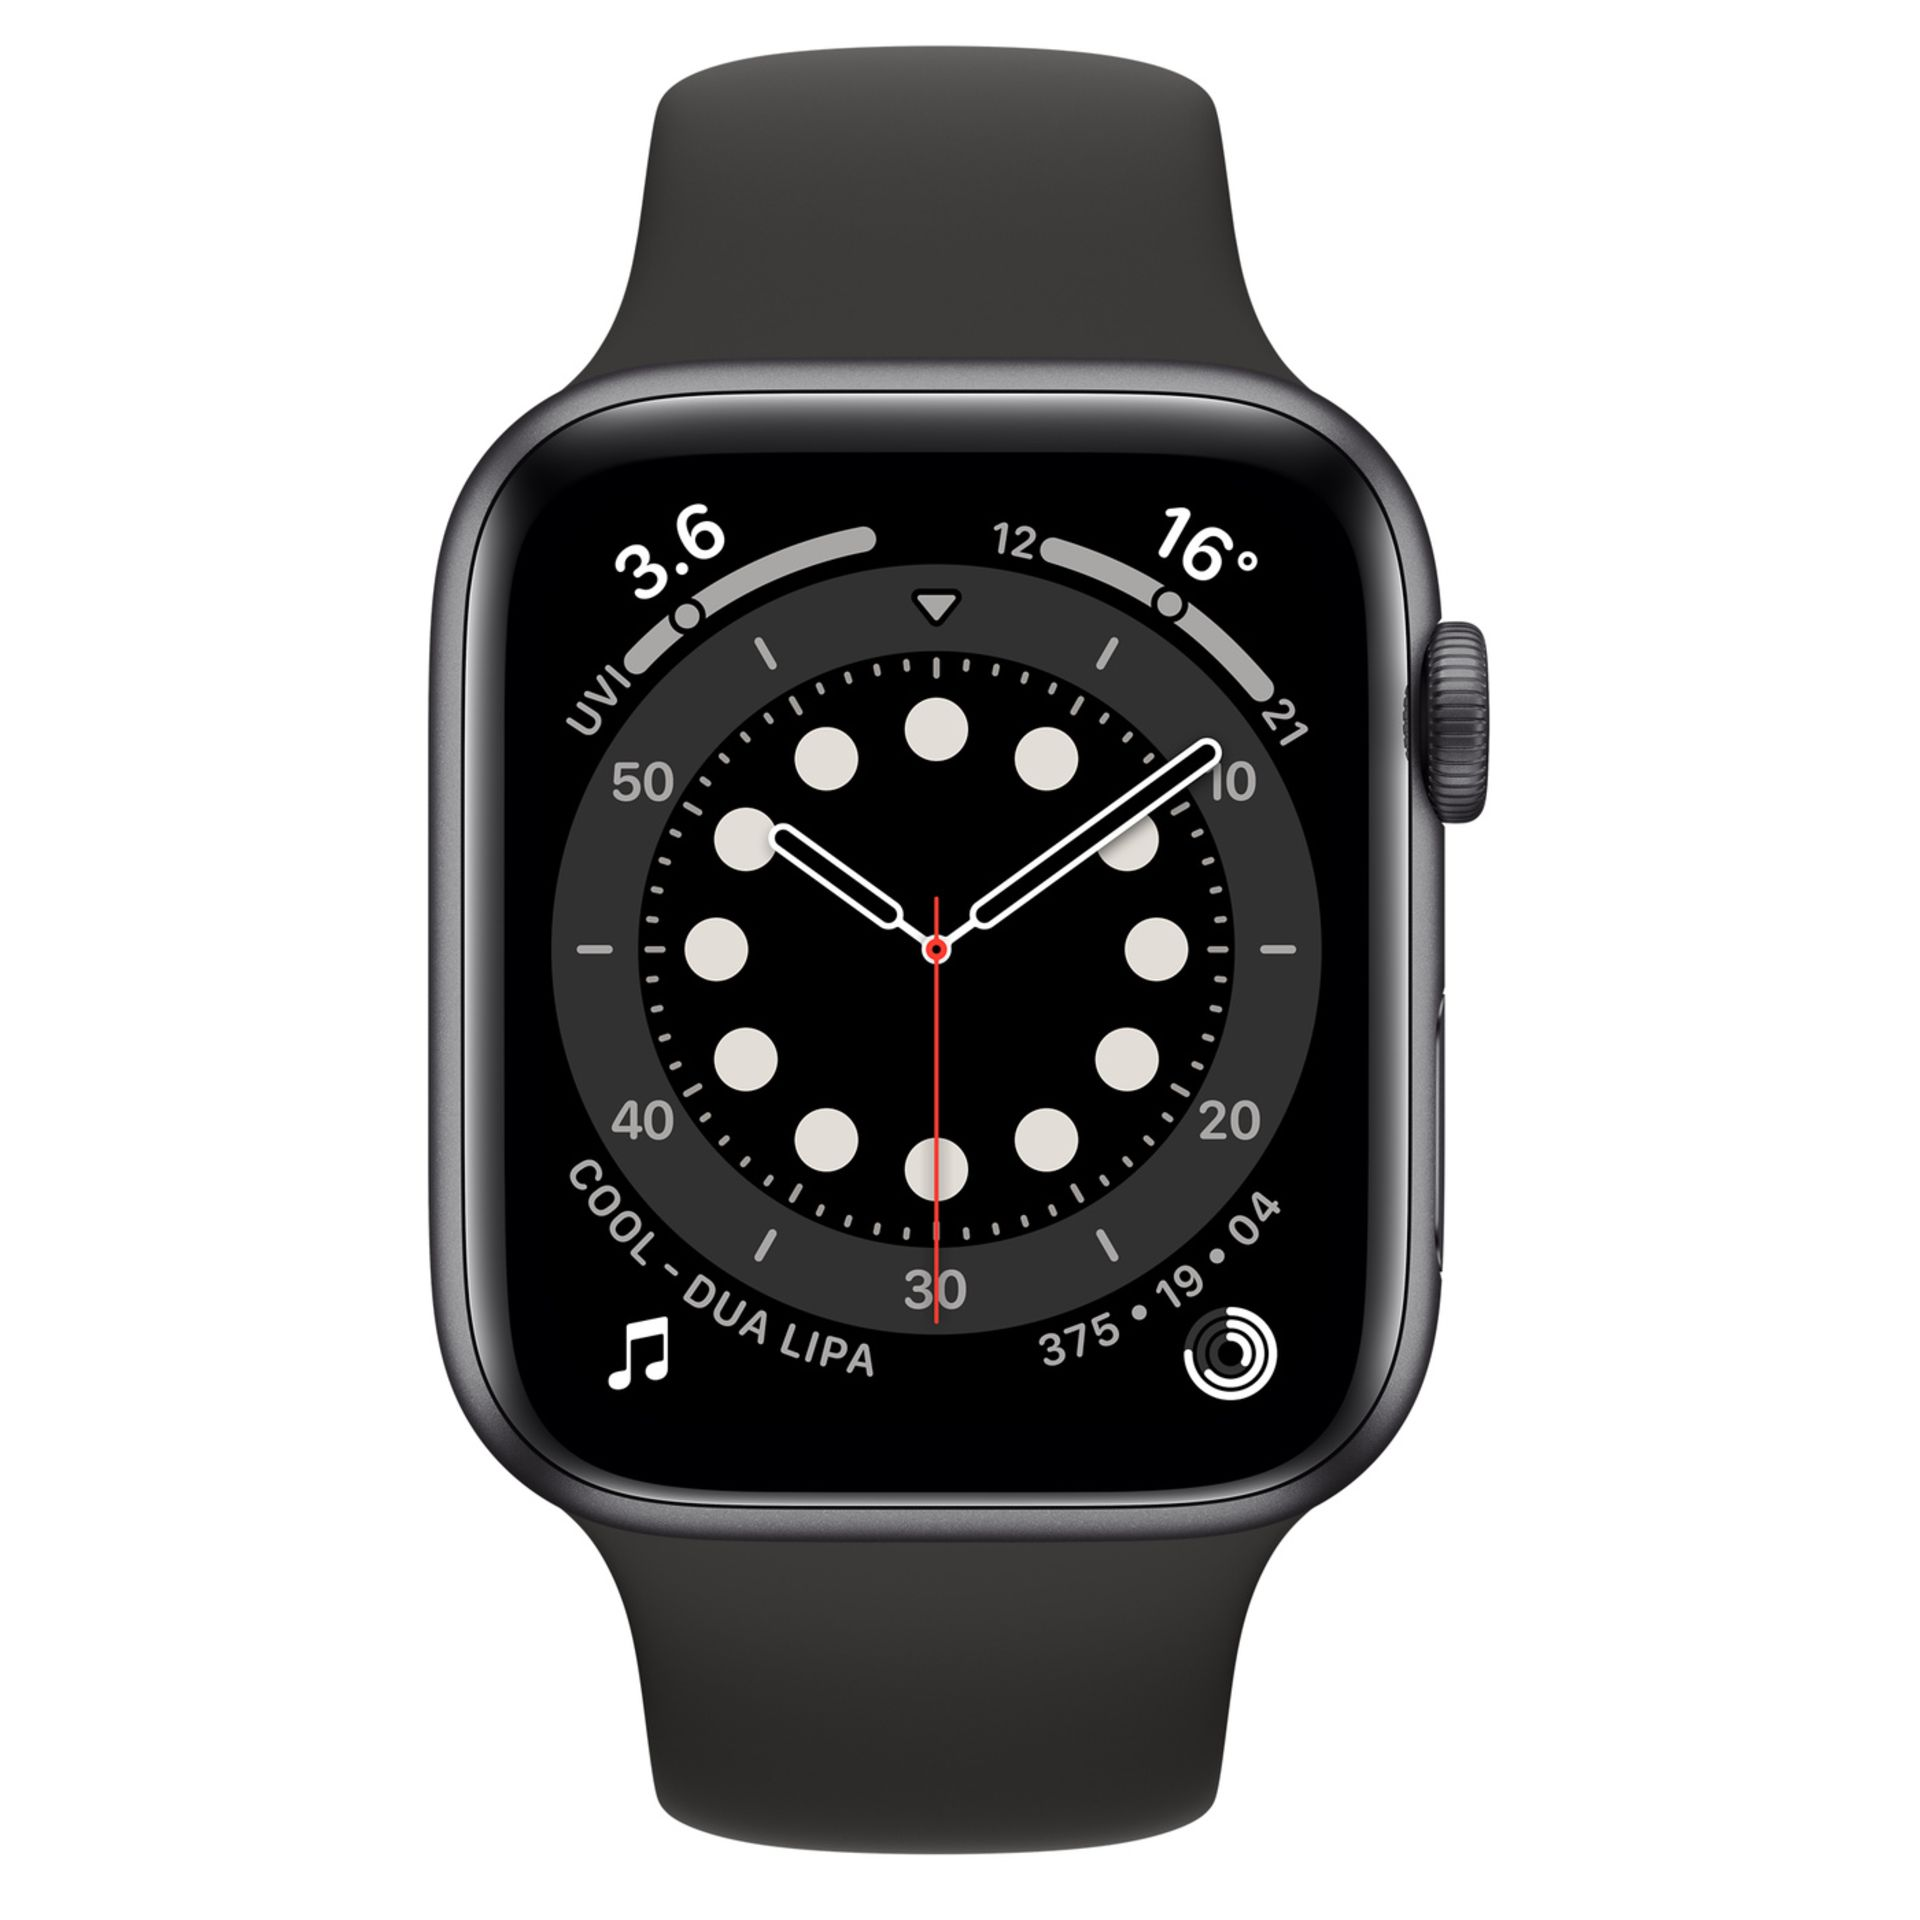 1 BOXED APPLE WATCH M00H3B/A SERIES 6 44MM SPACE GRAY ALUMINIUM WITH BLACK SPORT BAND RRP £399 (